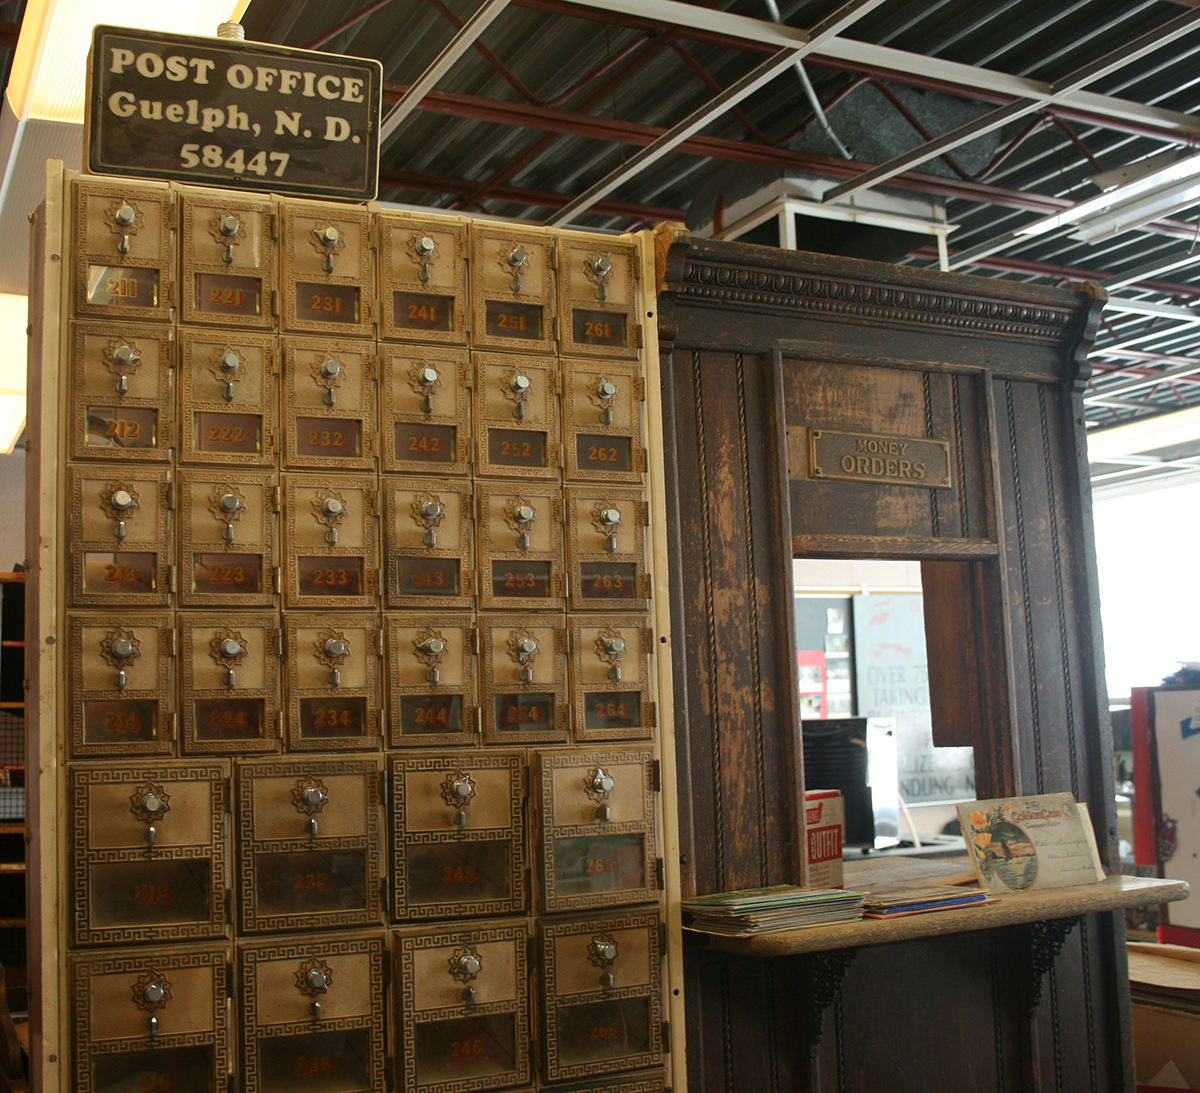 Other parts of the school building are used as museum space, telling Guelph's history. Here, boxes and the service window from the old post office are on display. Museum items have been donated from many families, so the stories they tell cover many aspects of past community life.